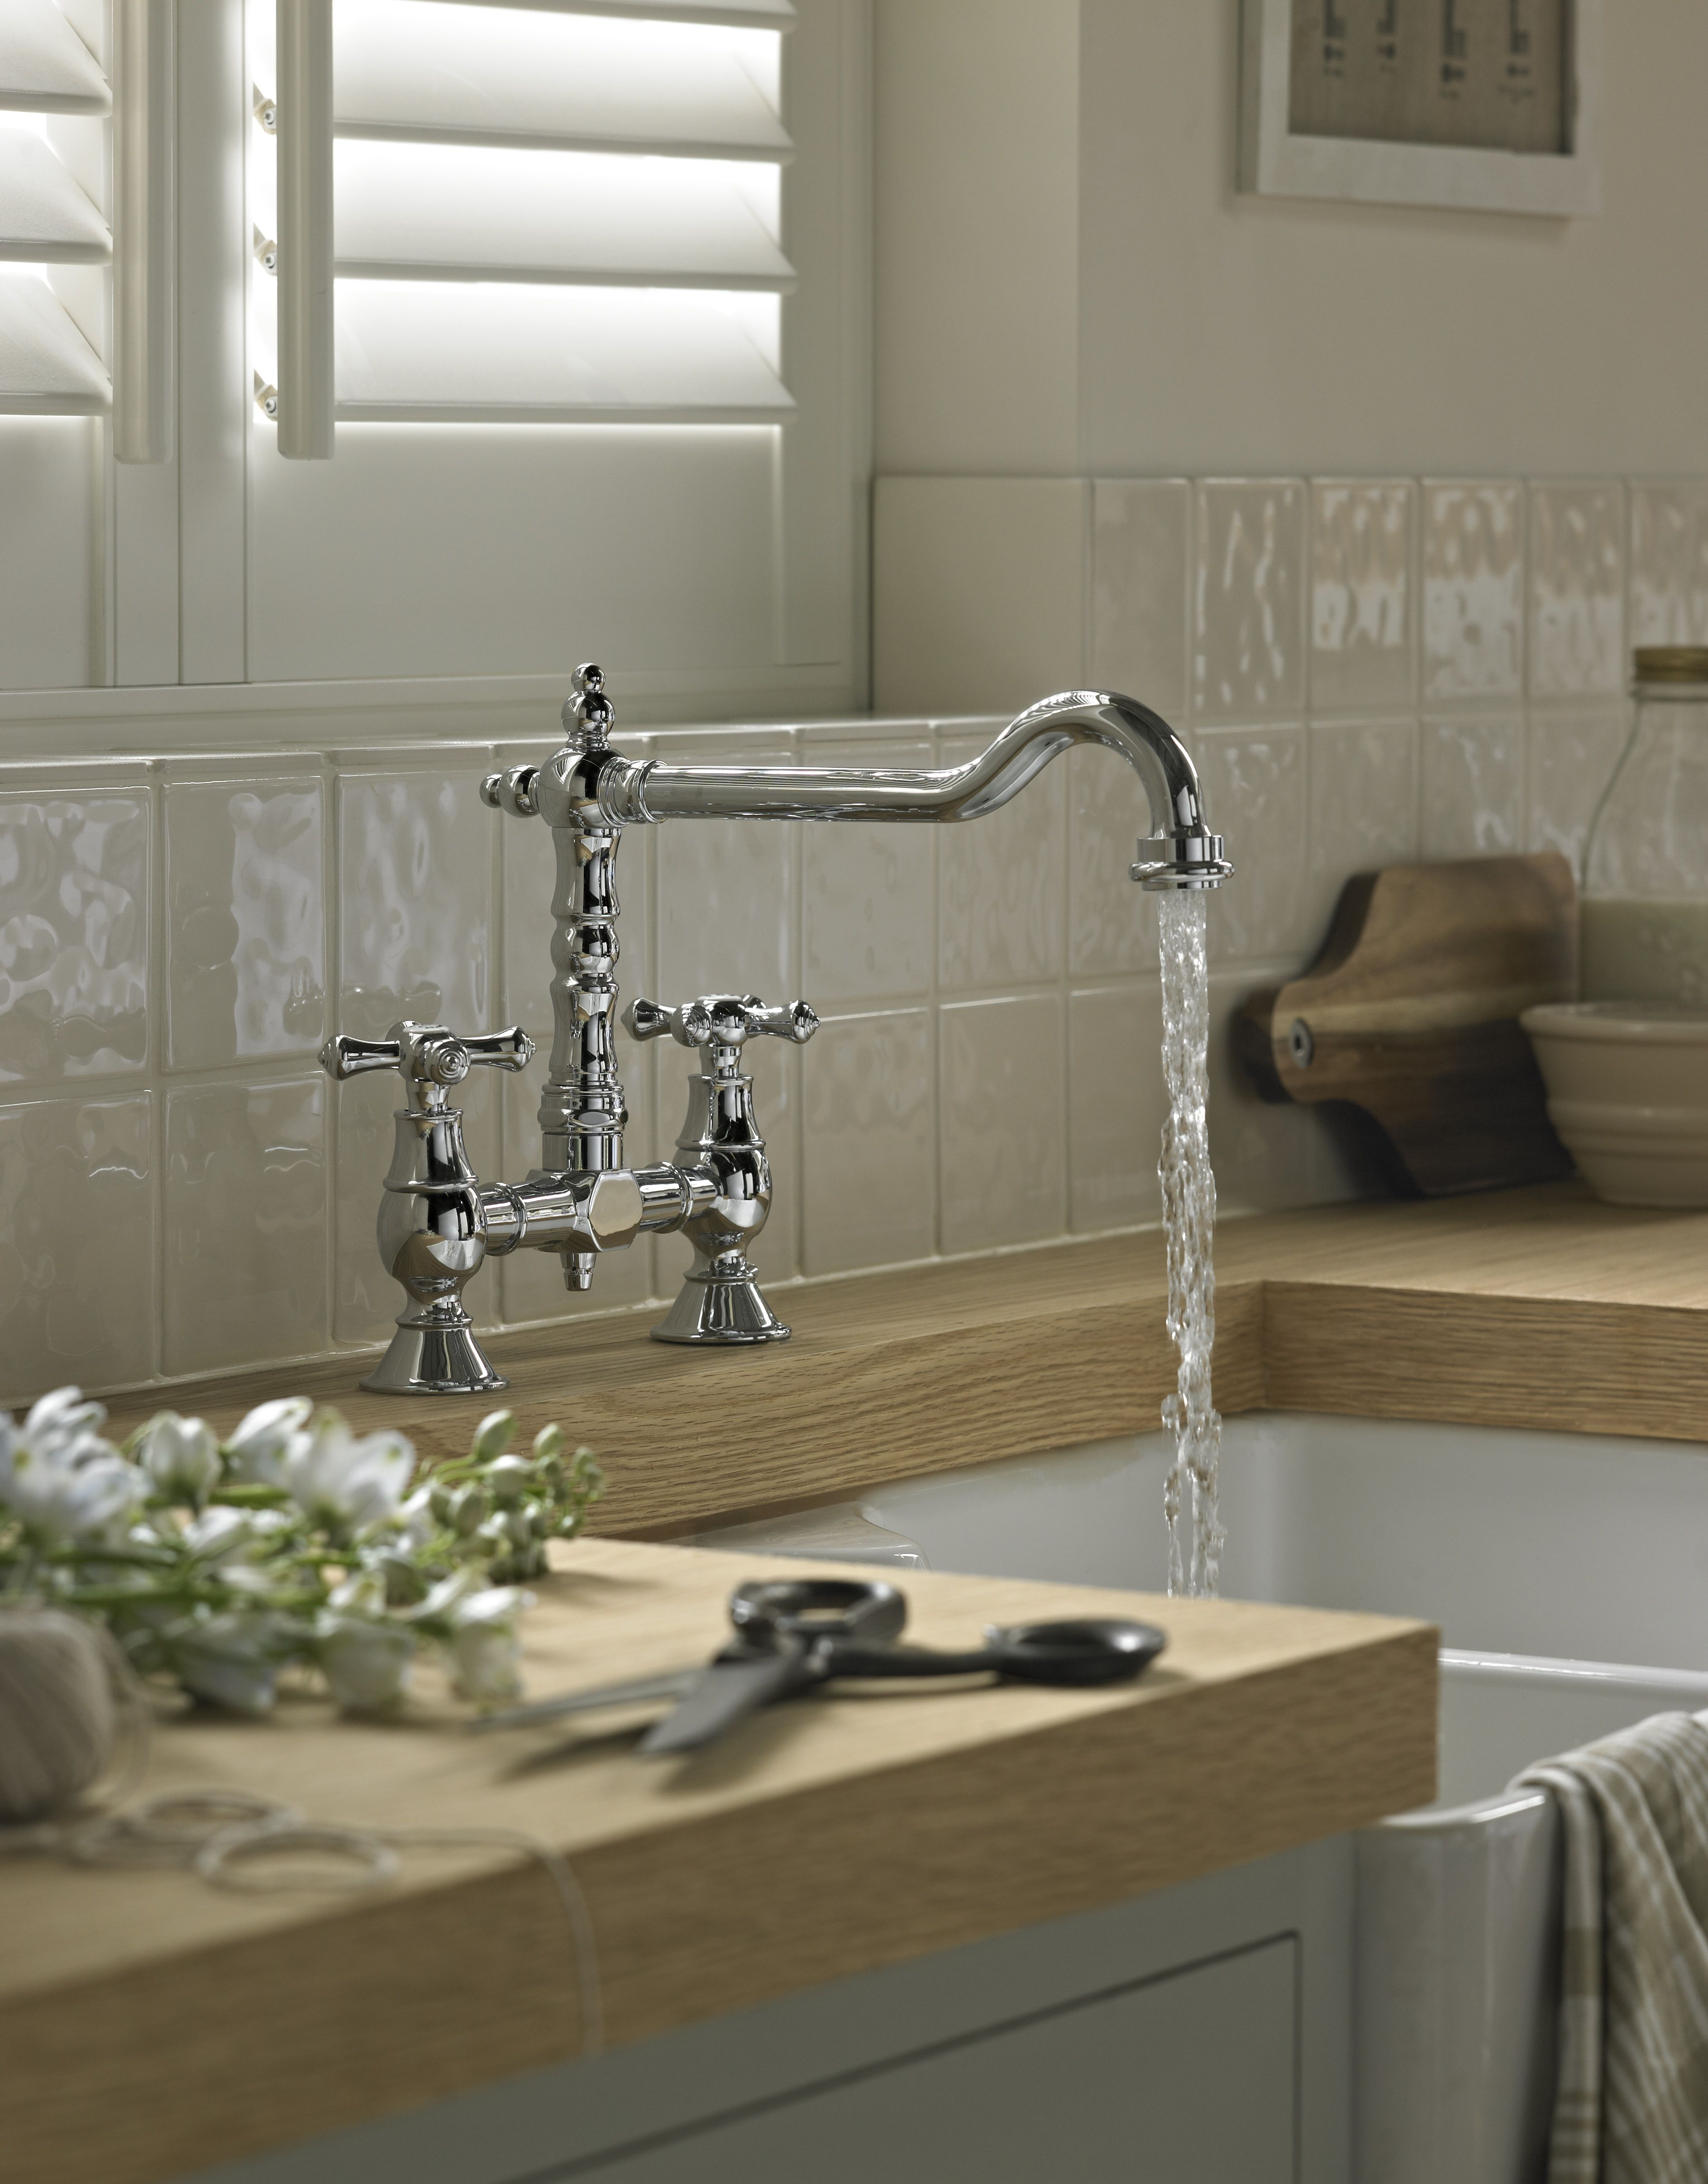 The Bristan Colonial Kitchen Mixer Tap Is One Of The Most Popular Traditional Style Taps Available Http Www Tradingdepot Co Uk Def Product K 20brsnk 20c